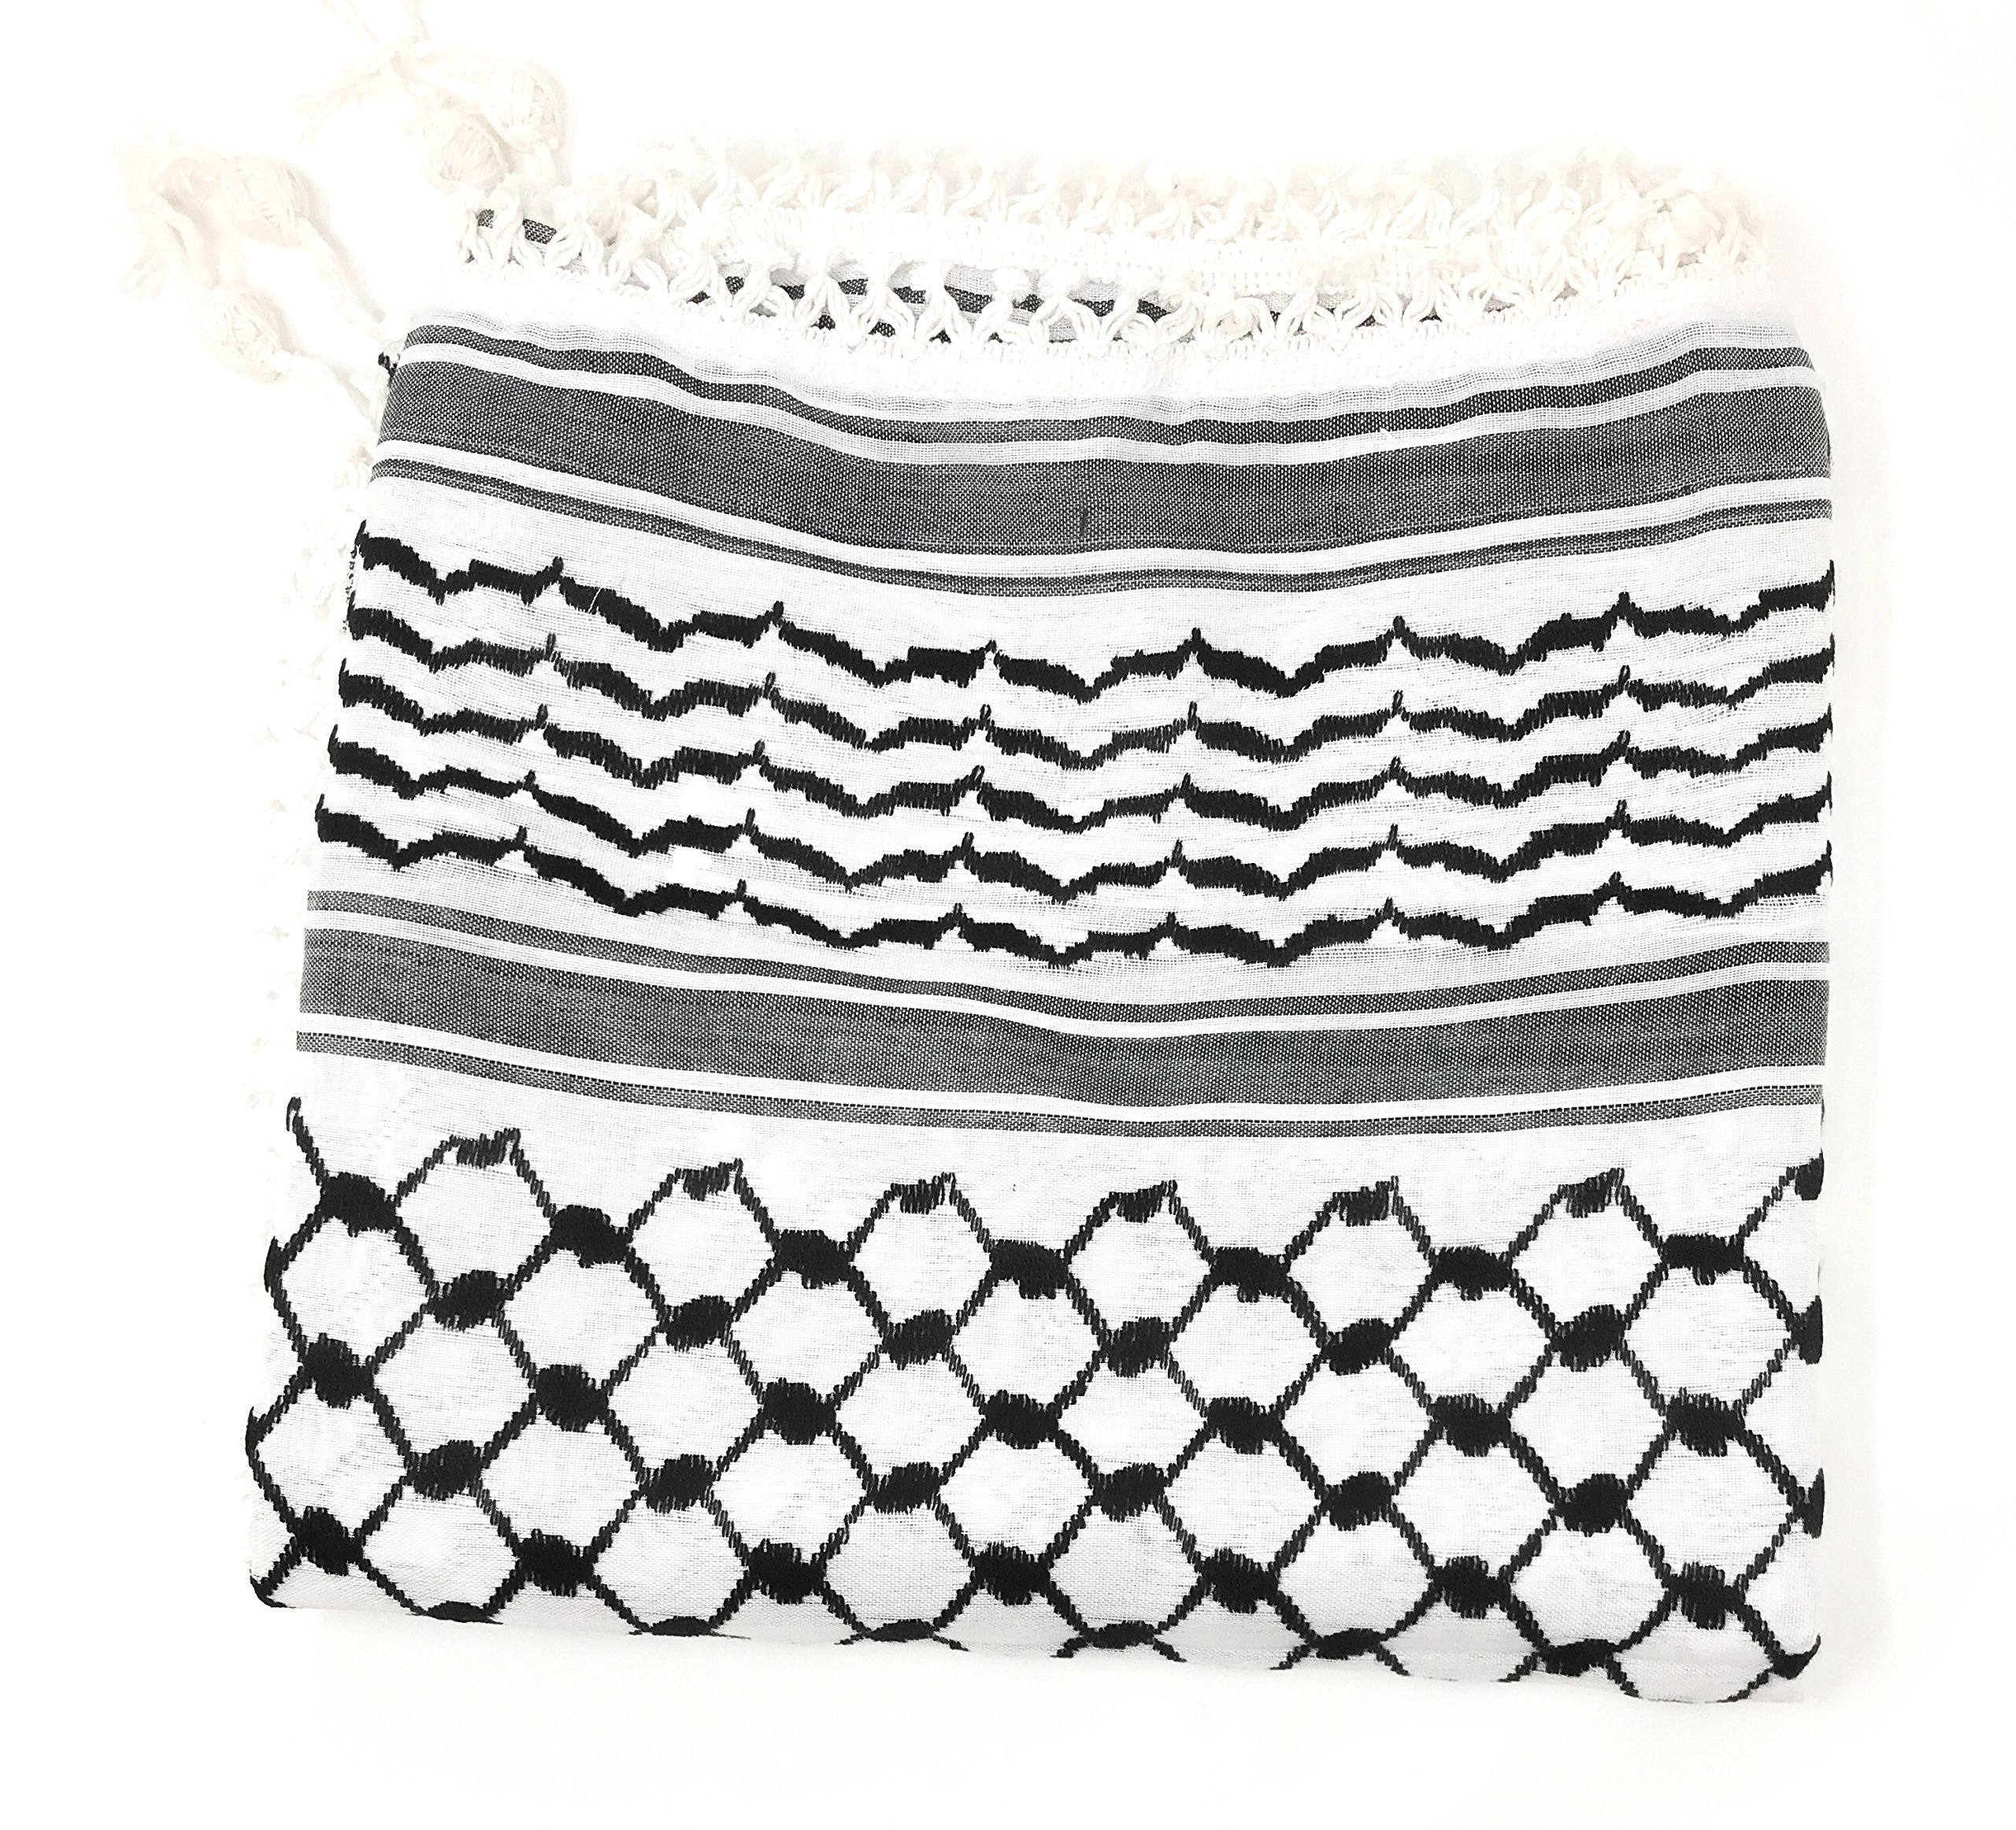 Keffiyeh - 100% Cotton - Tactical Desert Scarf - Covers Full Face - Hand Stitched in the Holy Land (50 x 44) inches